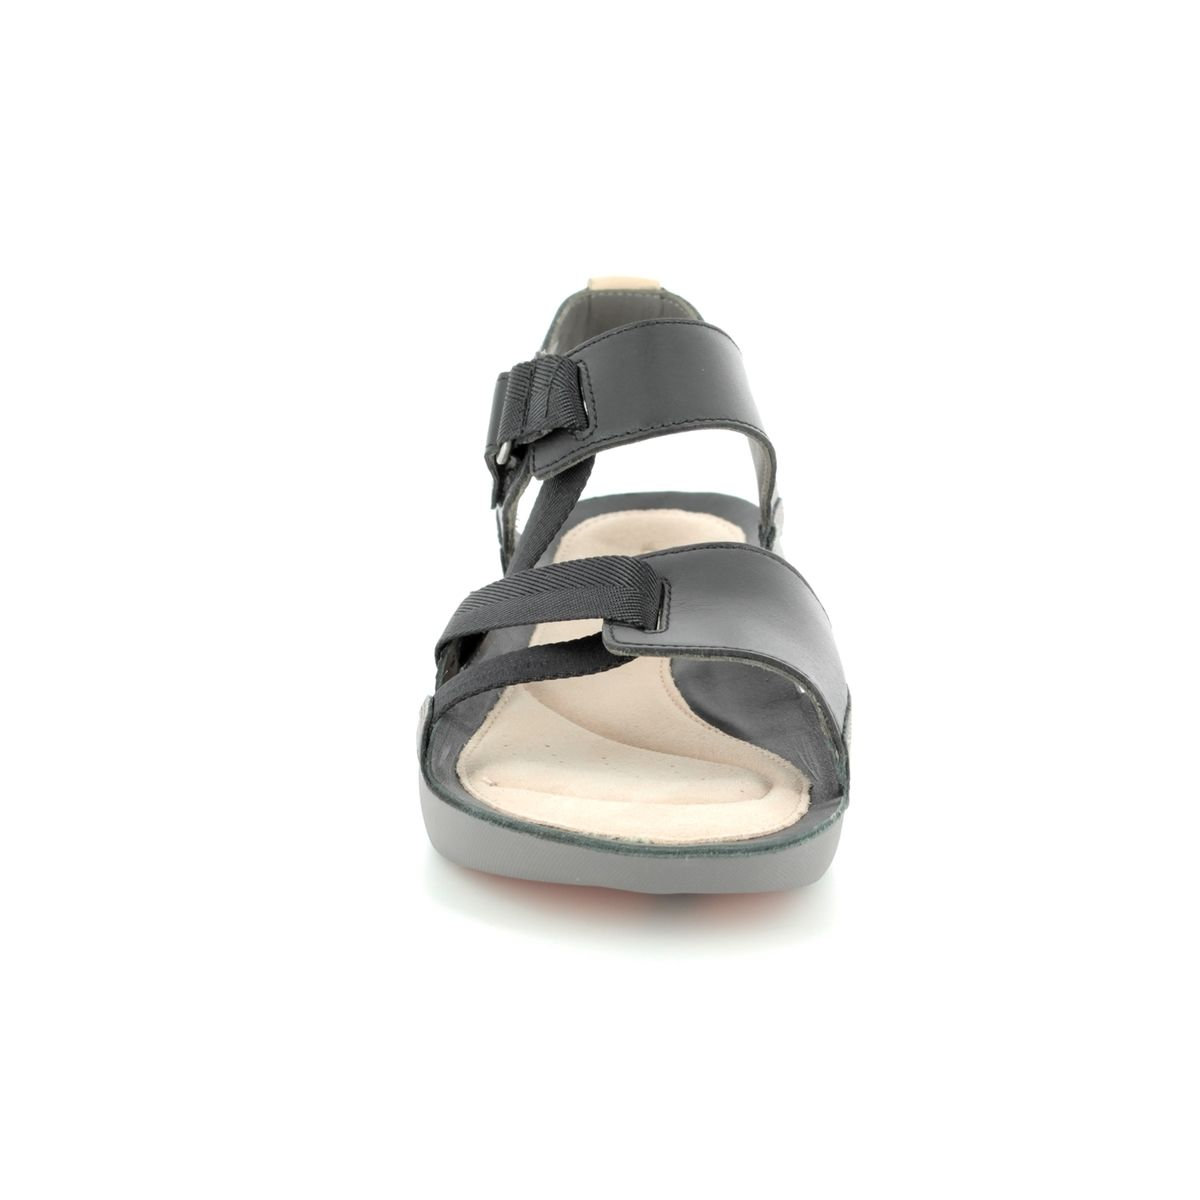 312734d Tri Clover at Begg Shoes & Bags